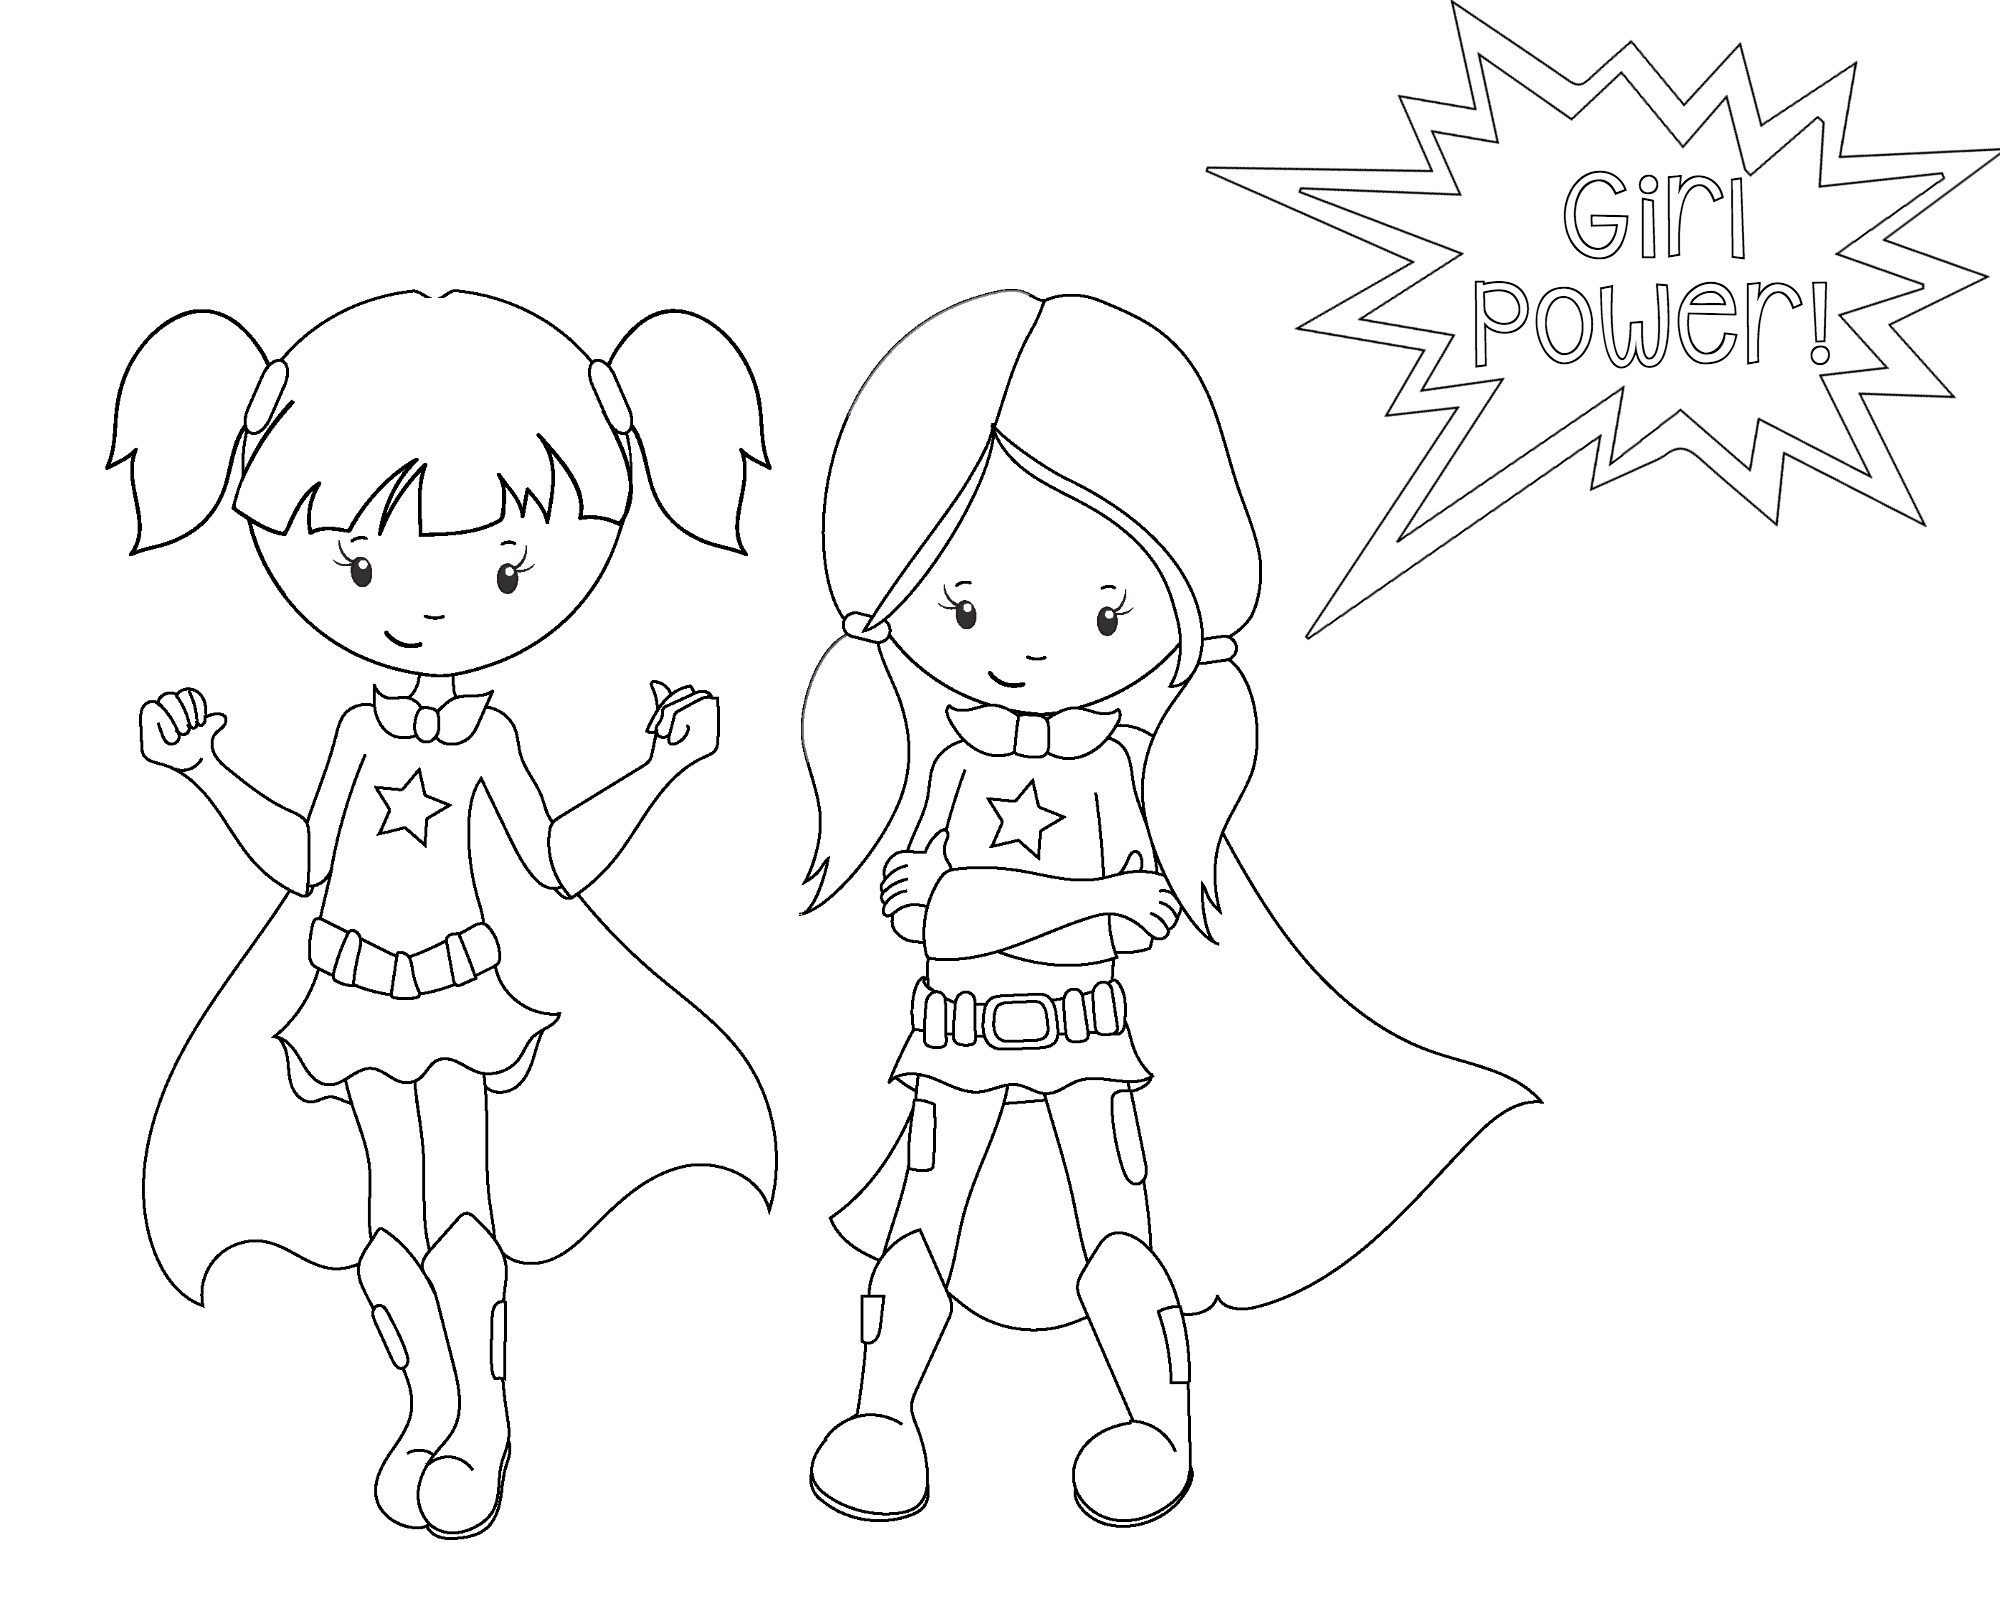 picture regarding Superheroes Printable Coloring Pages named Totally free Printable Superhero Coloring Sheets for Little ones - Outrageous